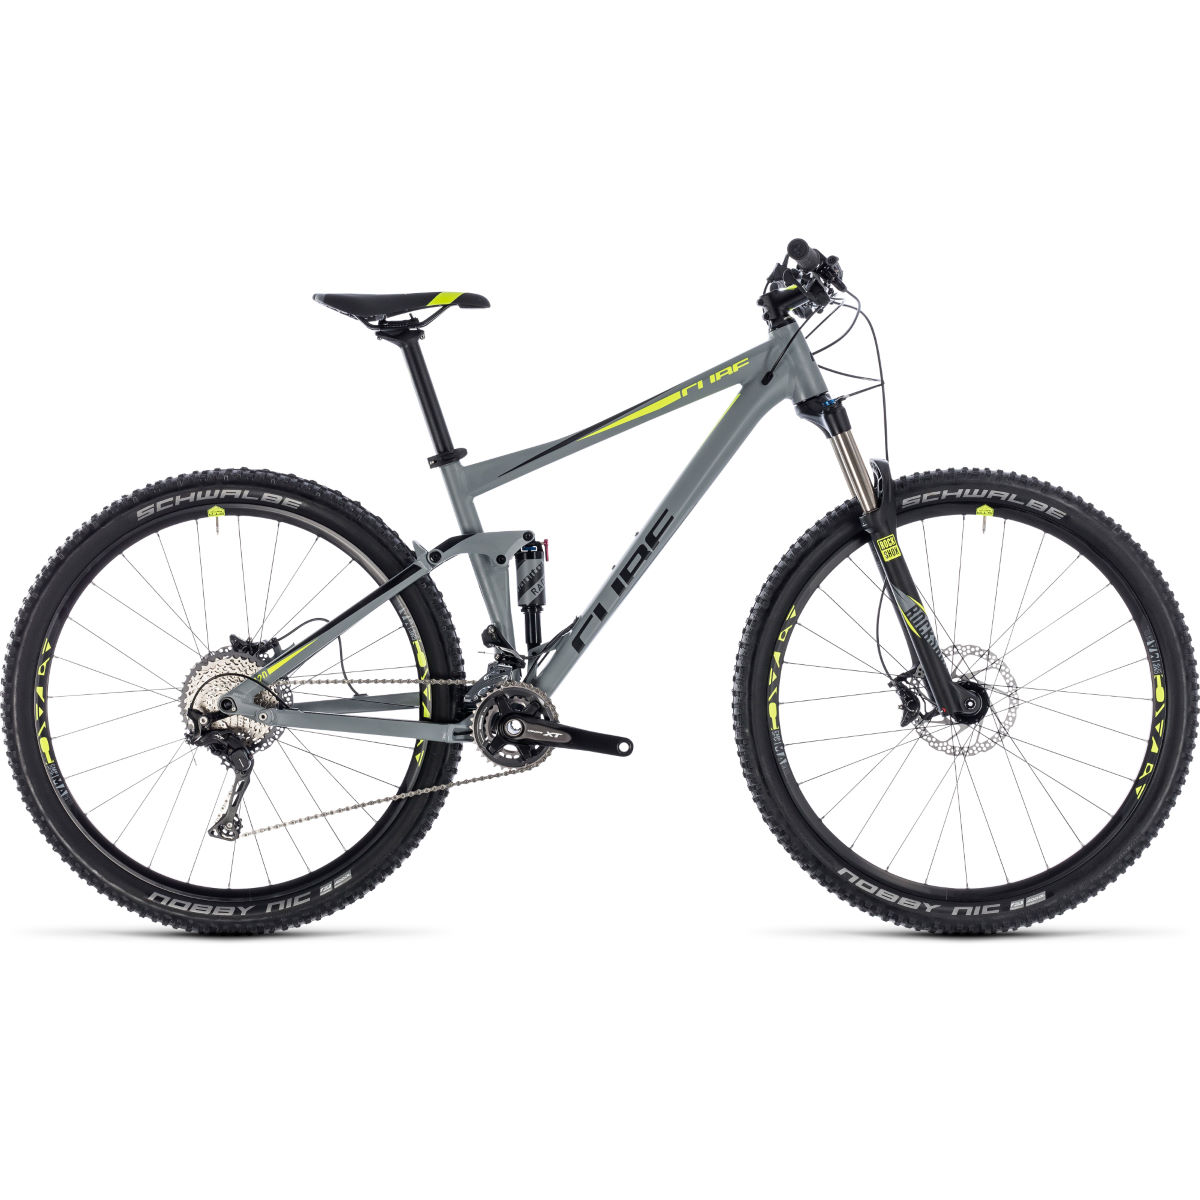 Cube Stereo 120 Pro 29 Suspension Bike (2018) - Bicicletas de MTB de doble suspensión